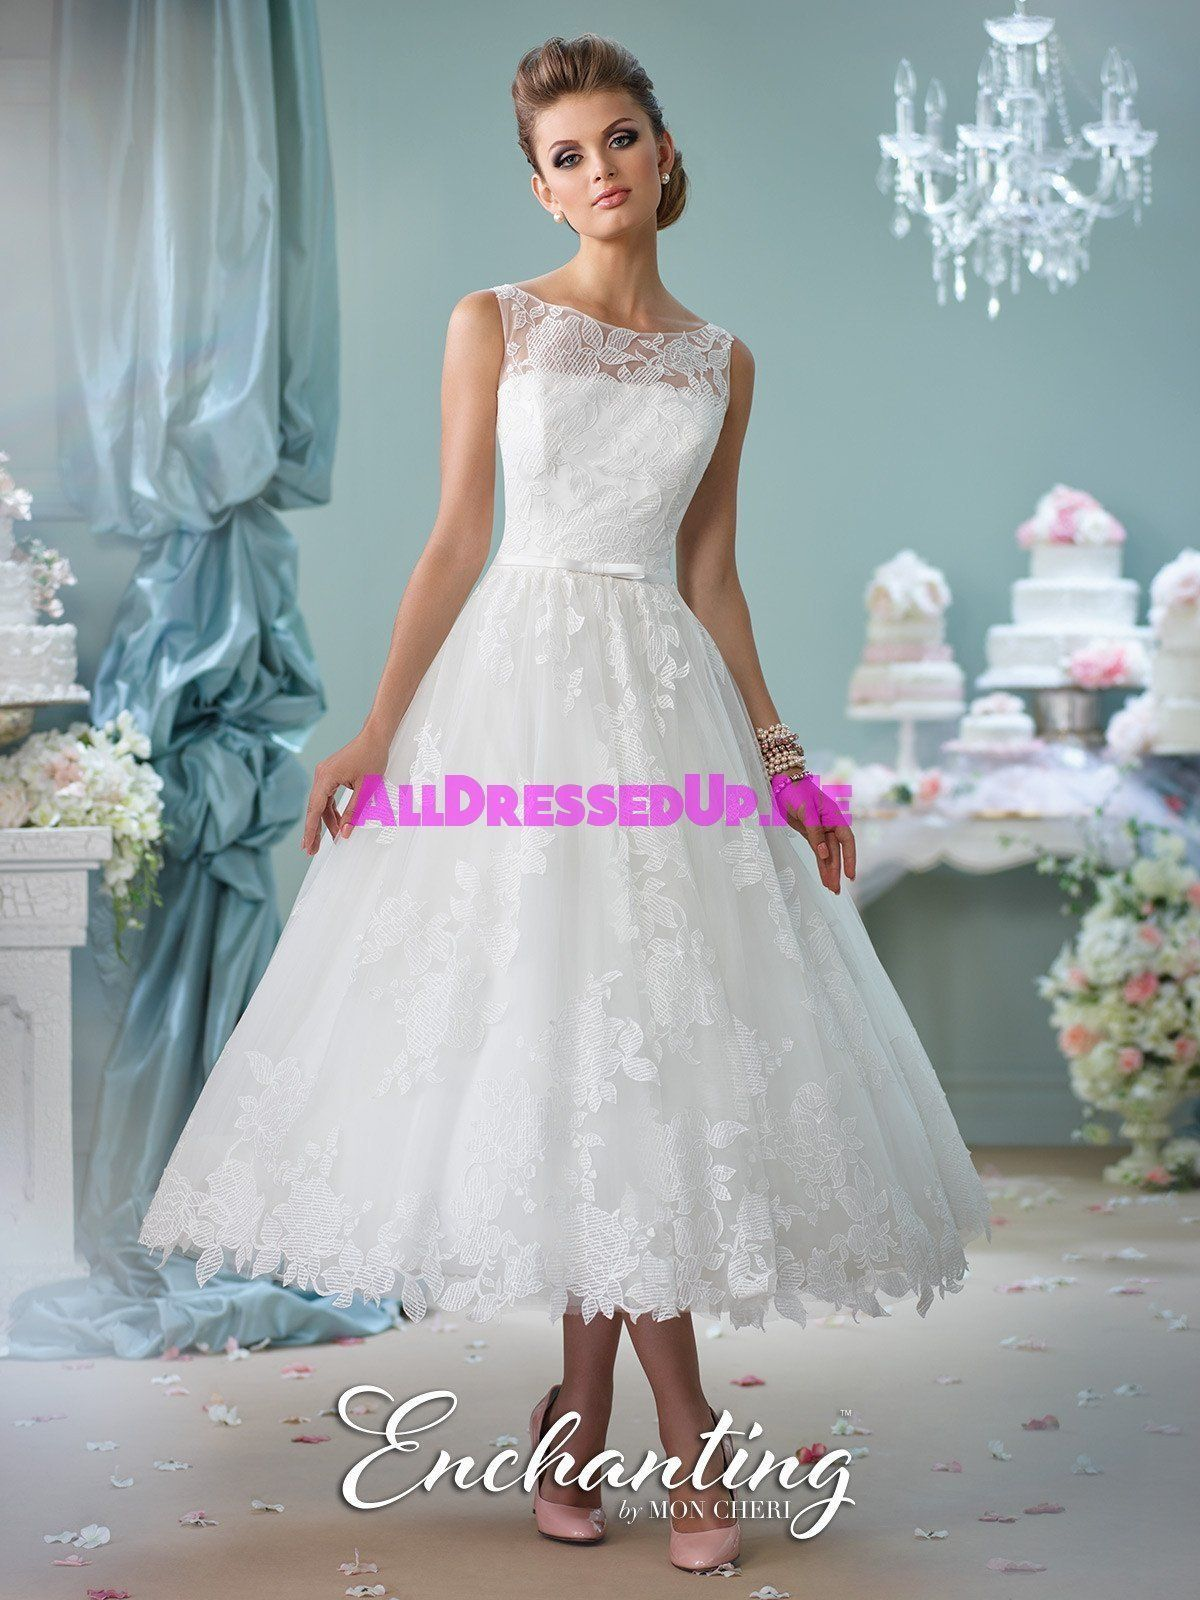 Enchanting - 116136 - All Dressed Up, Bridal Gown